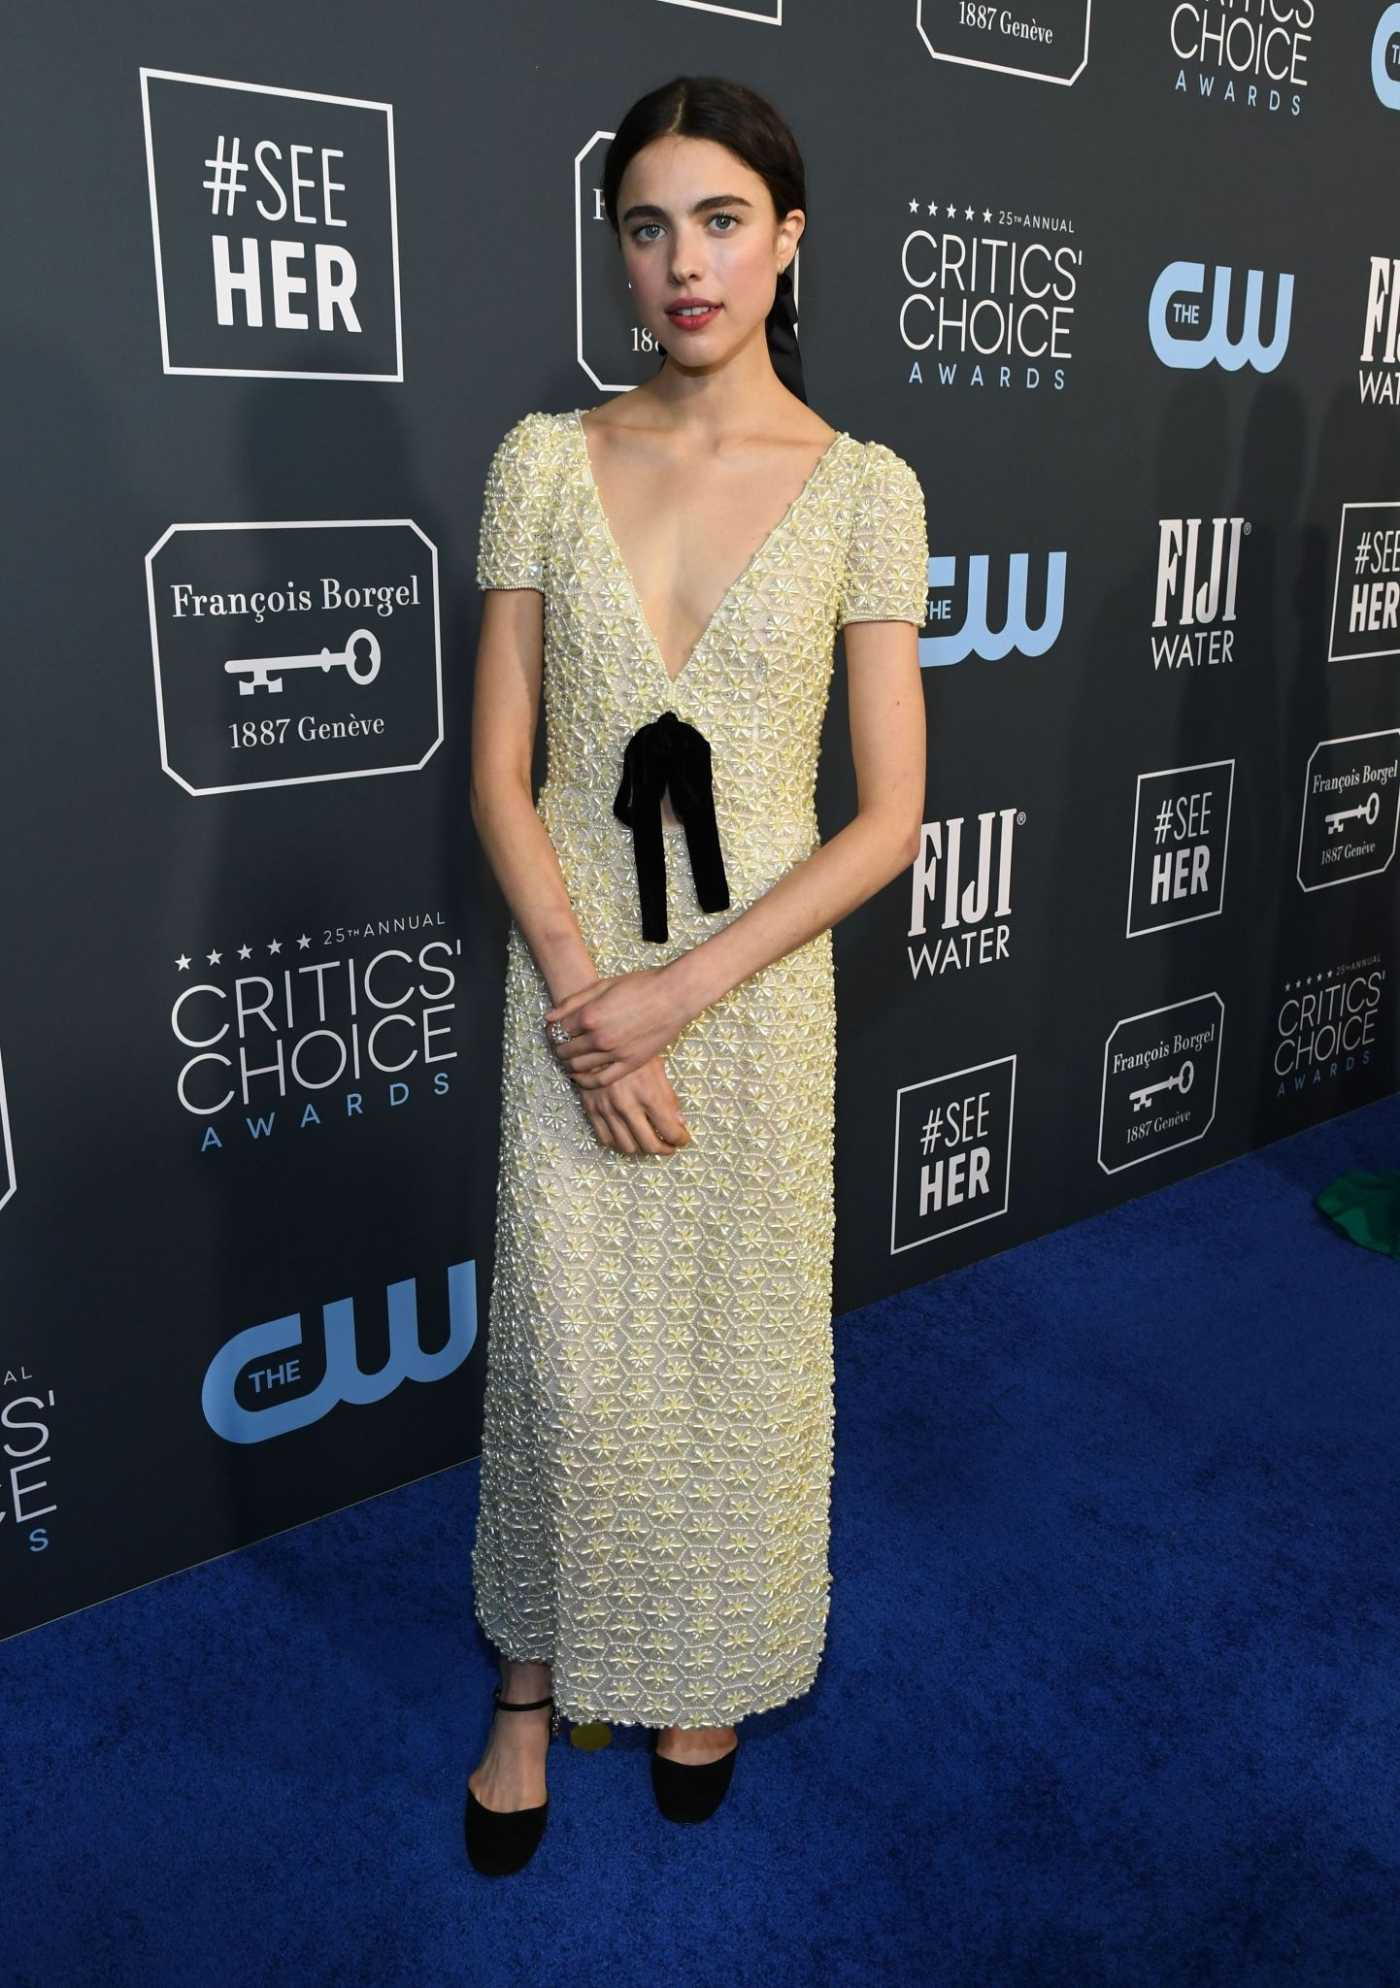 Margaret Qualley Attends the 25th Annual Critics Choice Awards in Santa Monica 01/12/2020